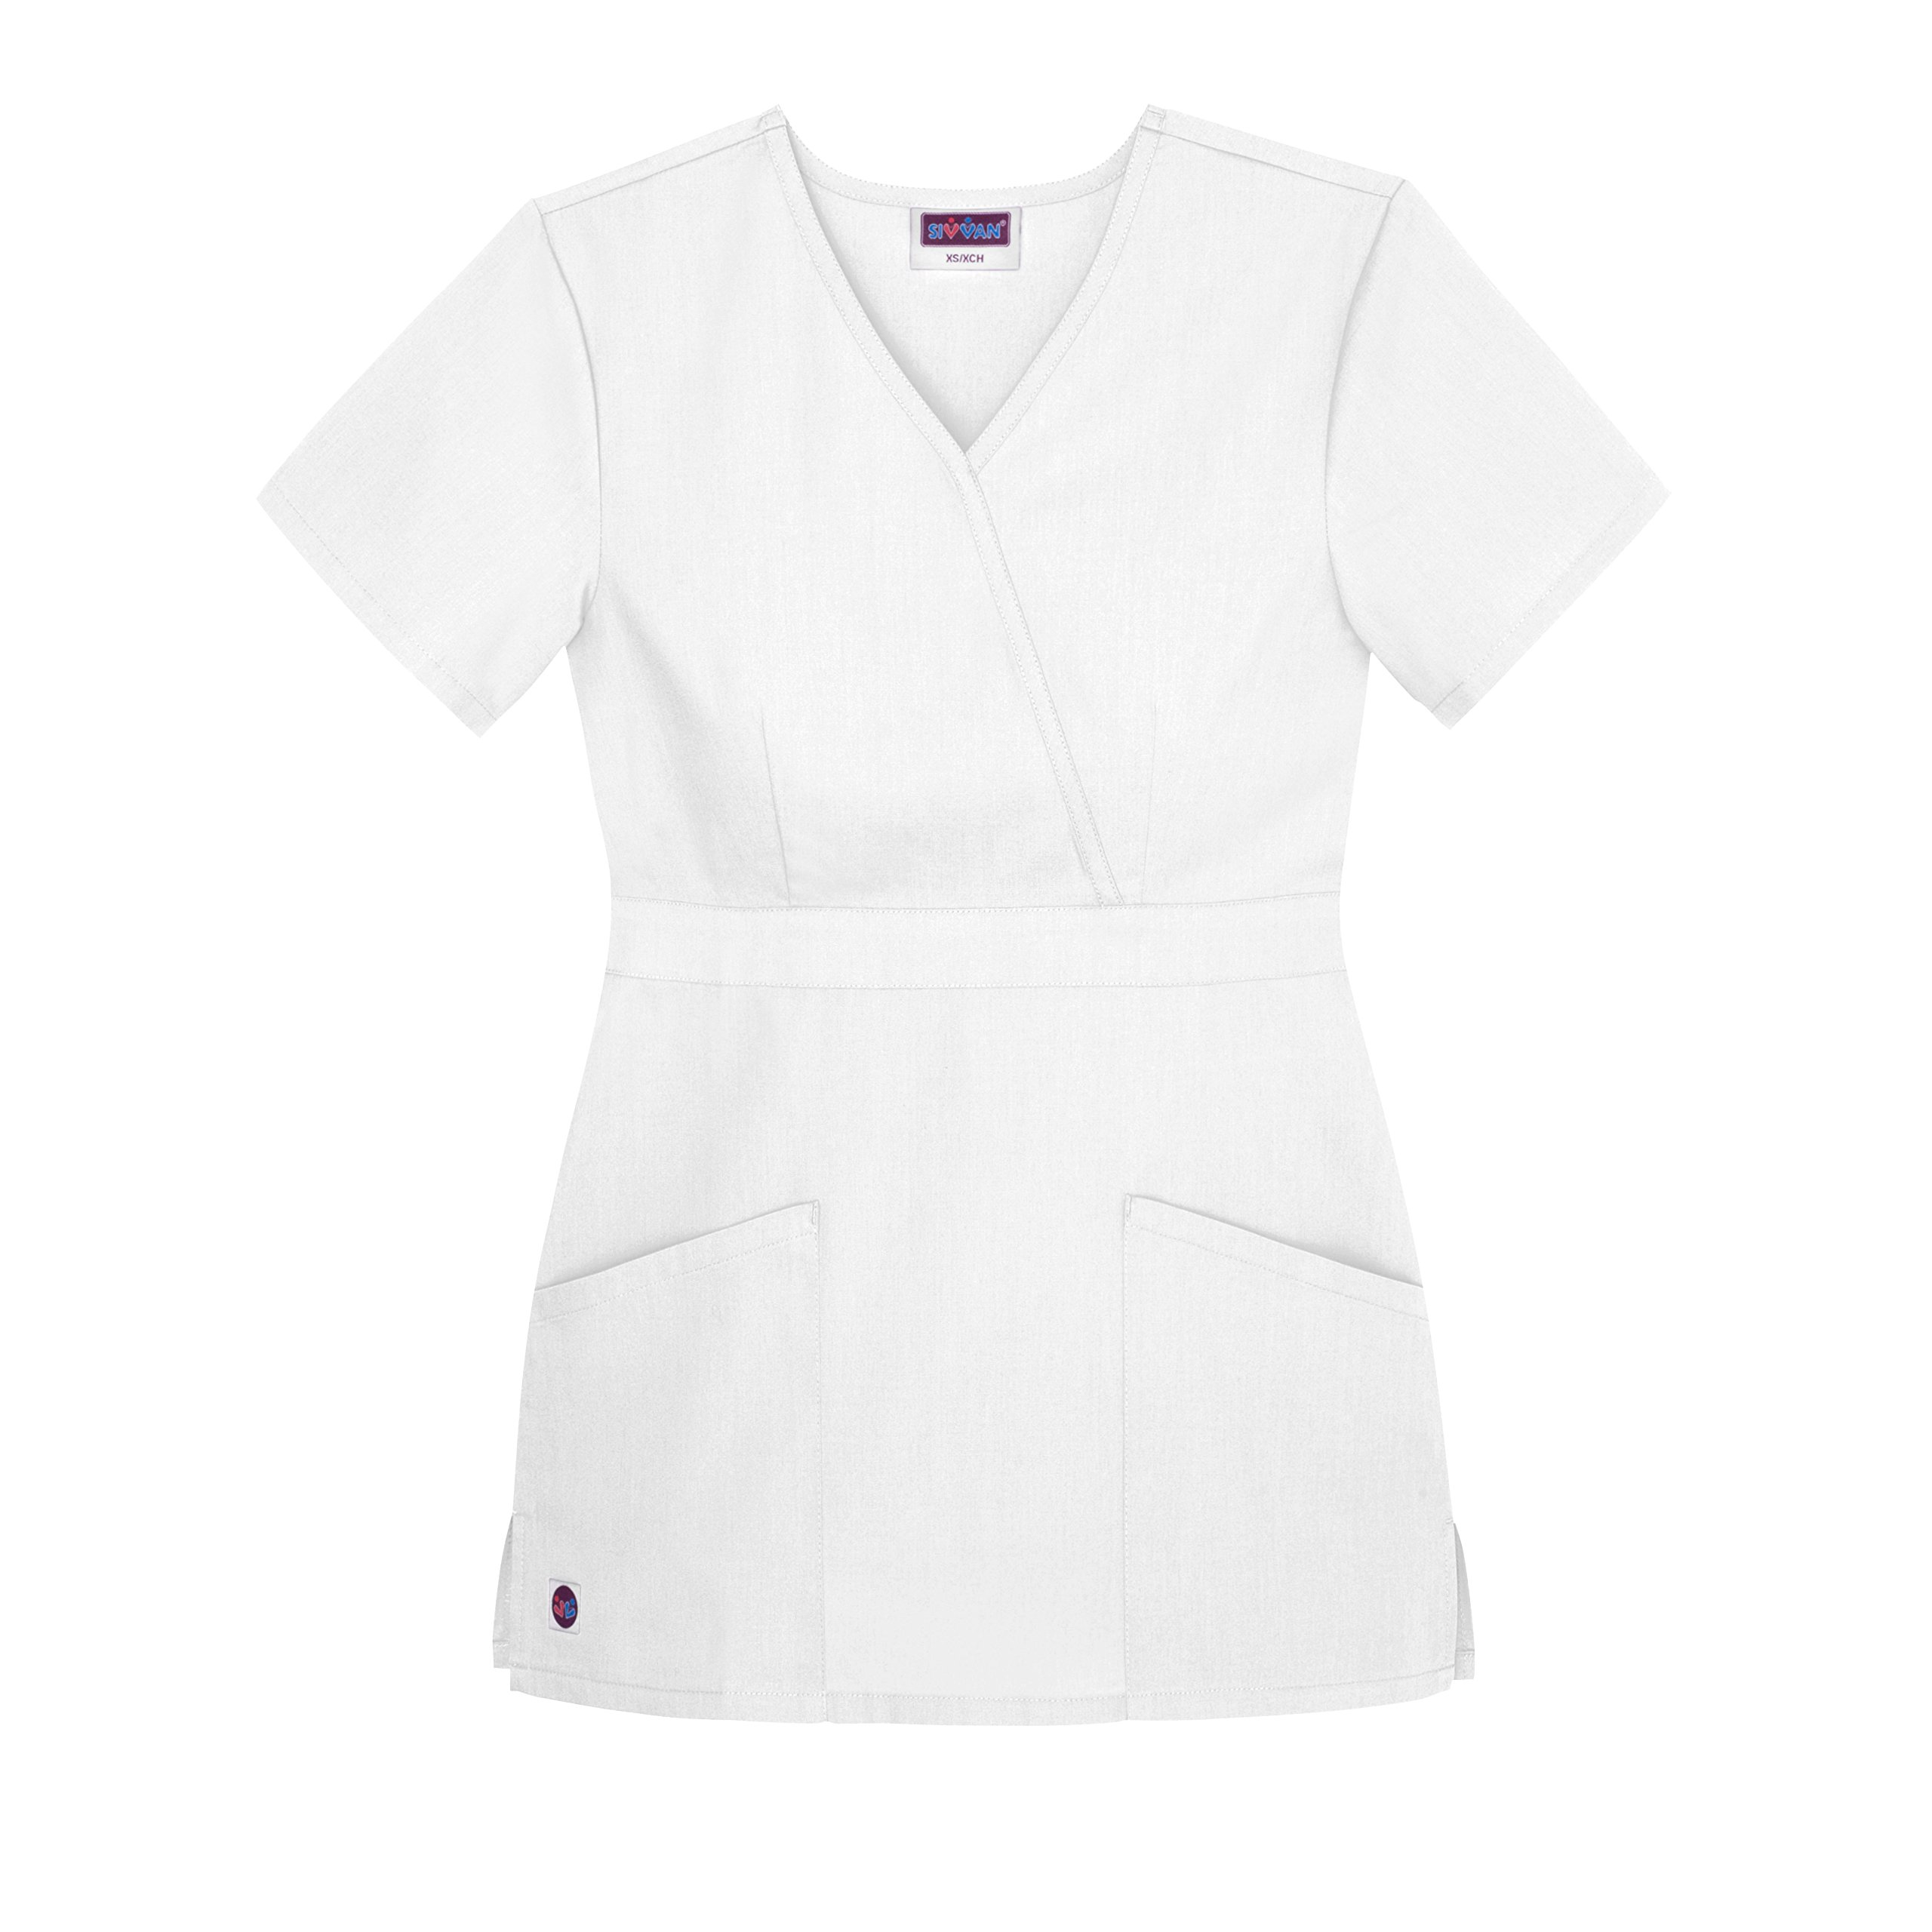 Sivvan Women's Scrubs Mock Wrap Top (Available in 12 Colors) - S8302 - White - L